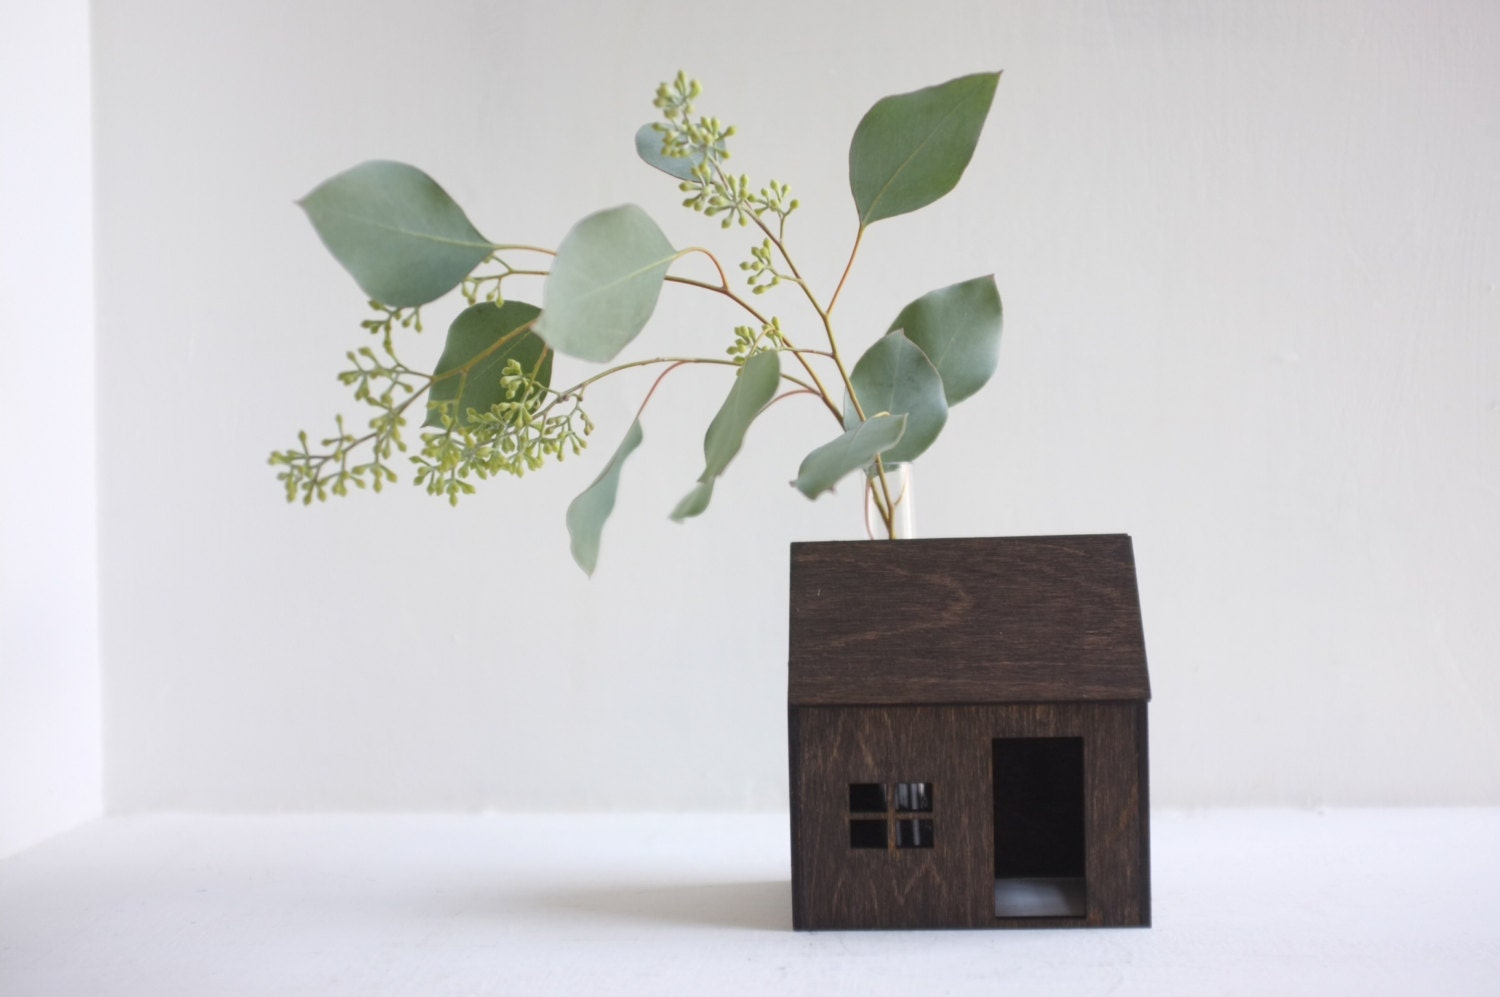 Little bud vase house - small wooden cabin in espresso with flower vase chimney - dark mini architecture - 2of2